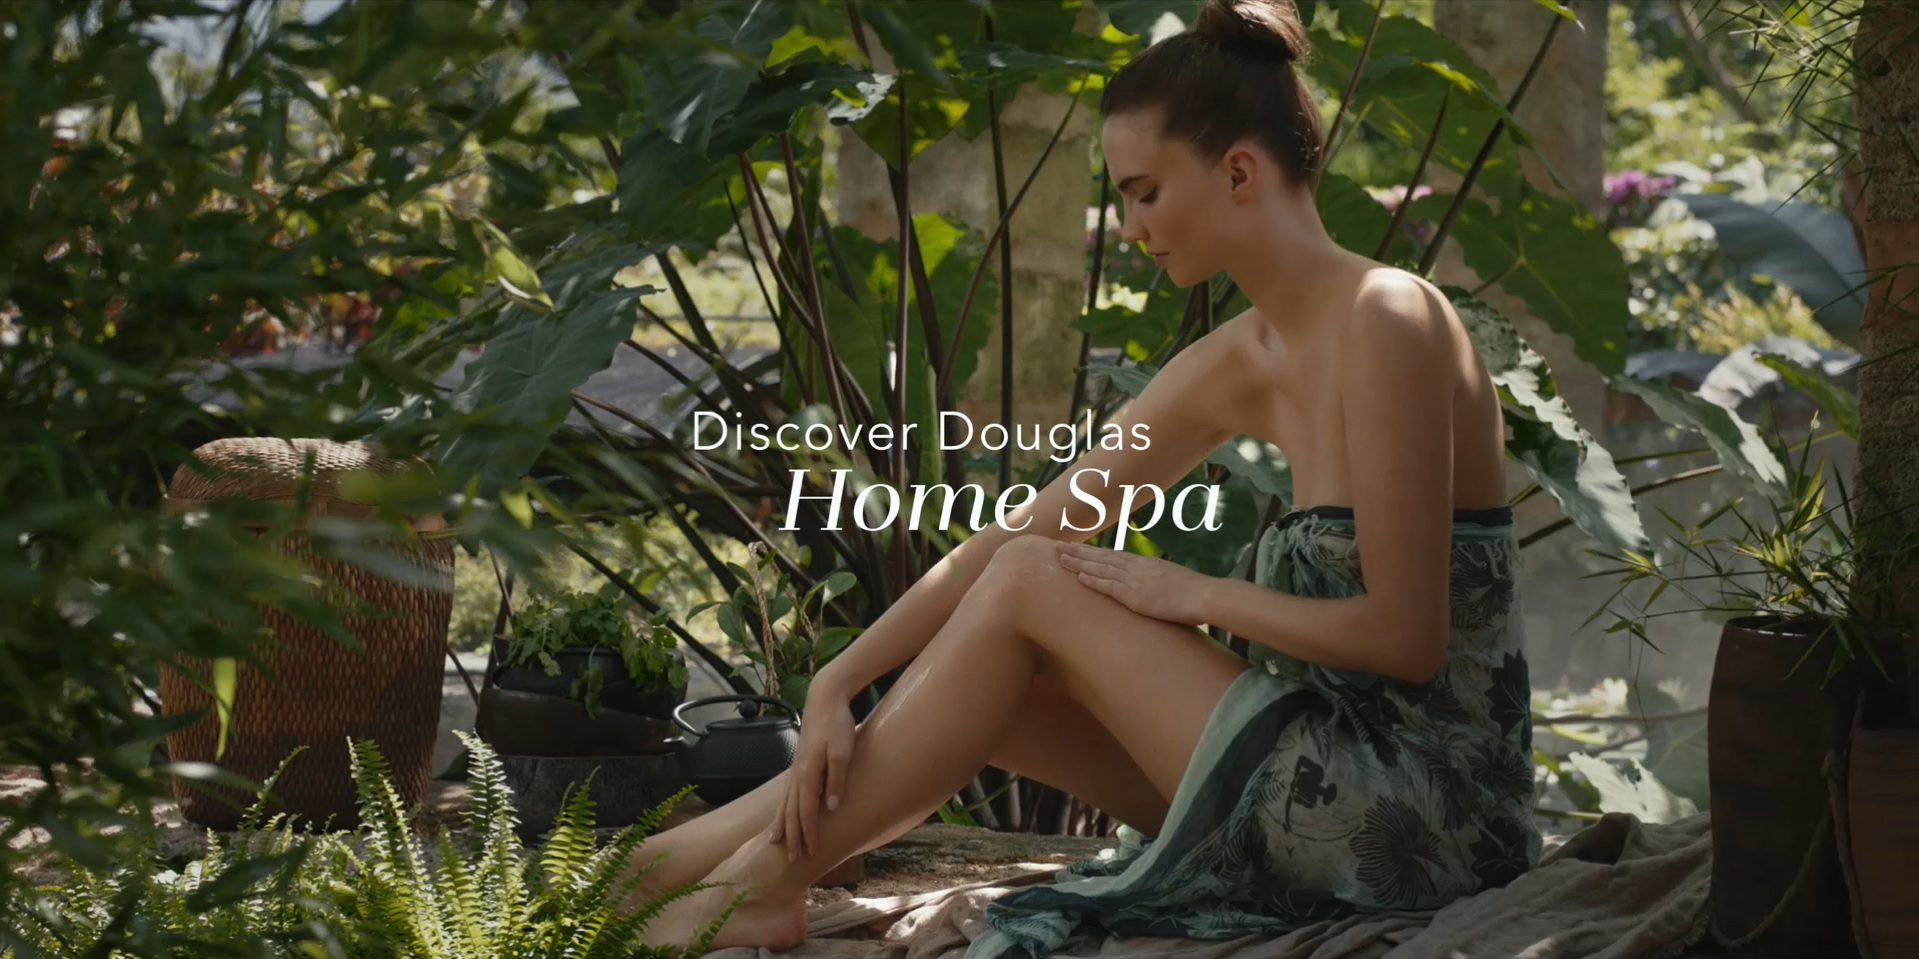 DOUGLAS HOME SPA - atrask